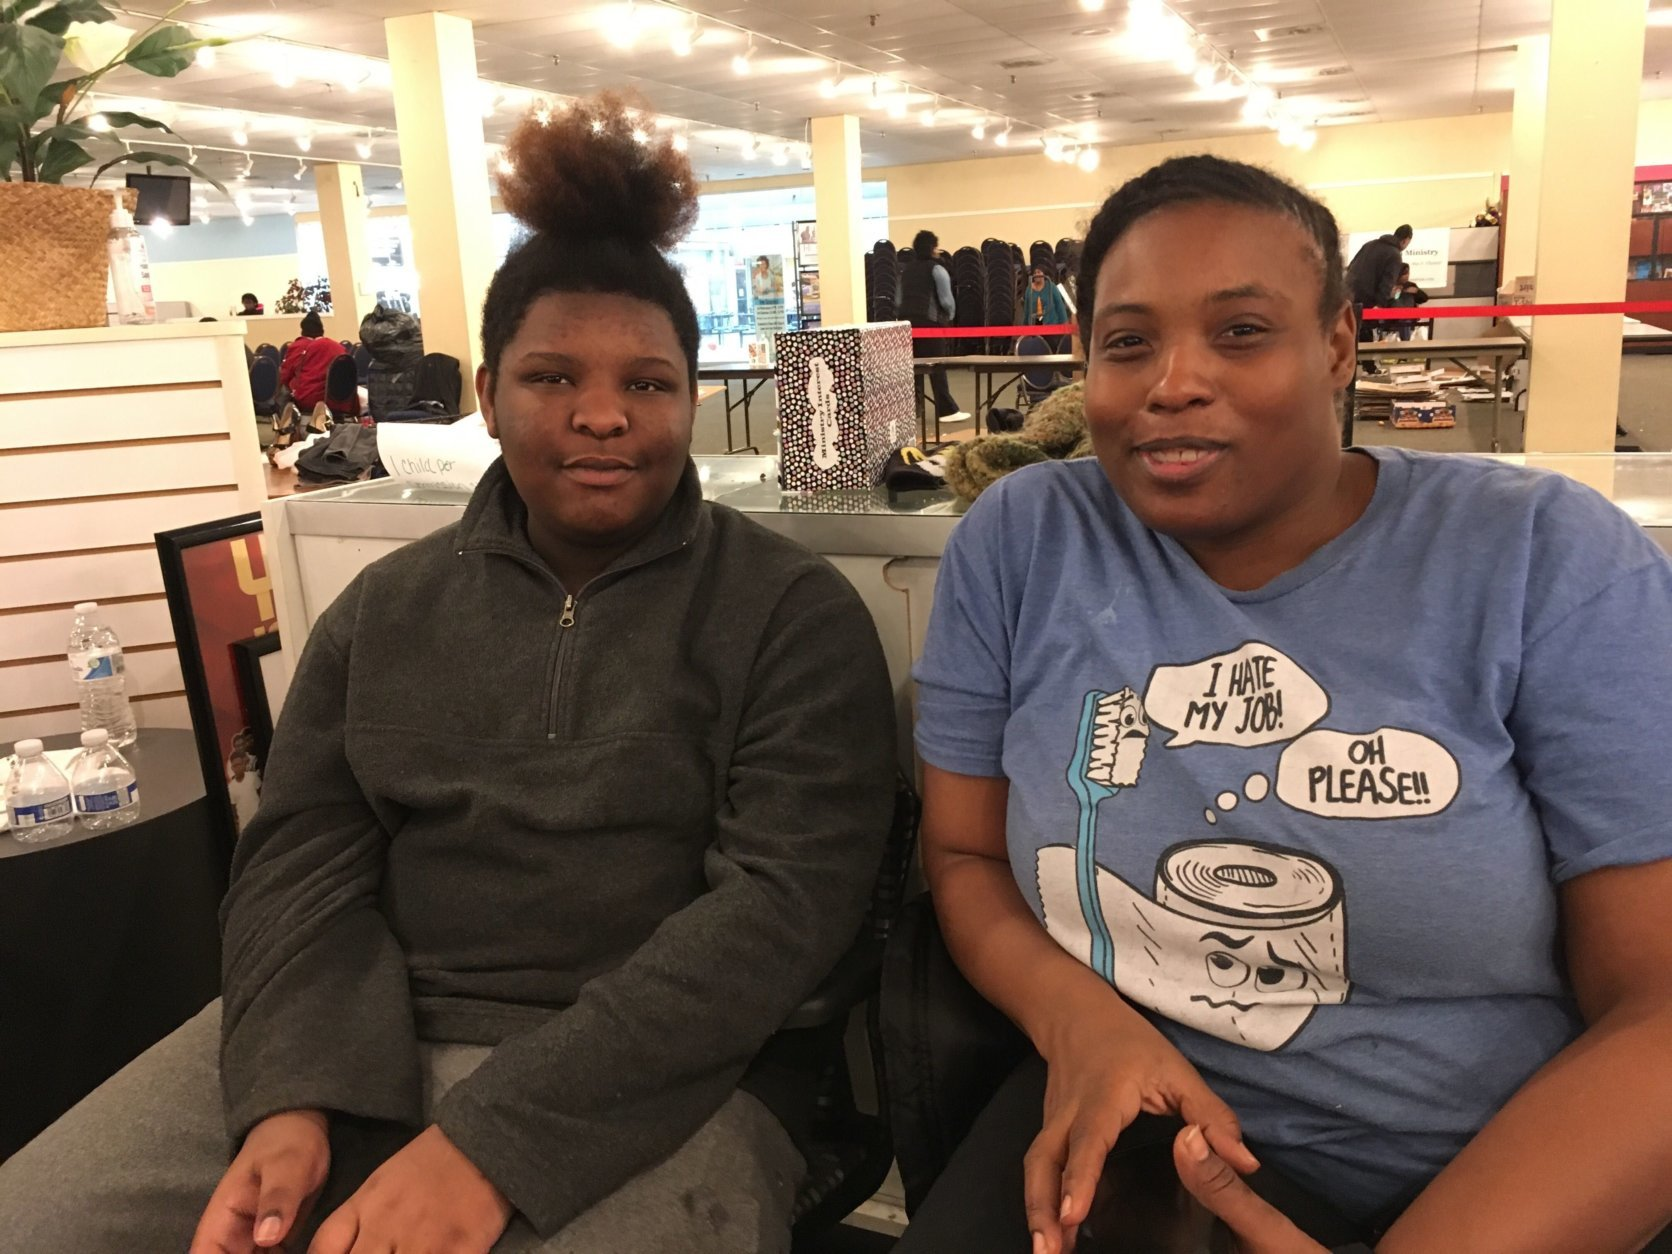 Prince George S Co Summer Youth Enrichment Program Helps Teens Start Job Search Wtop